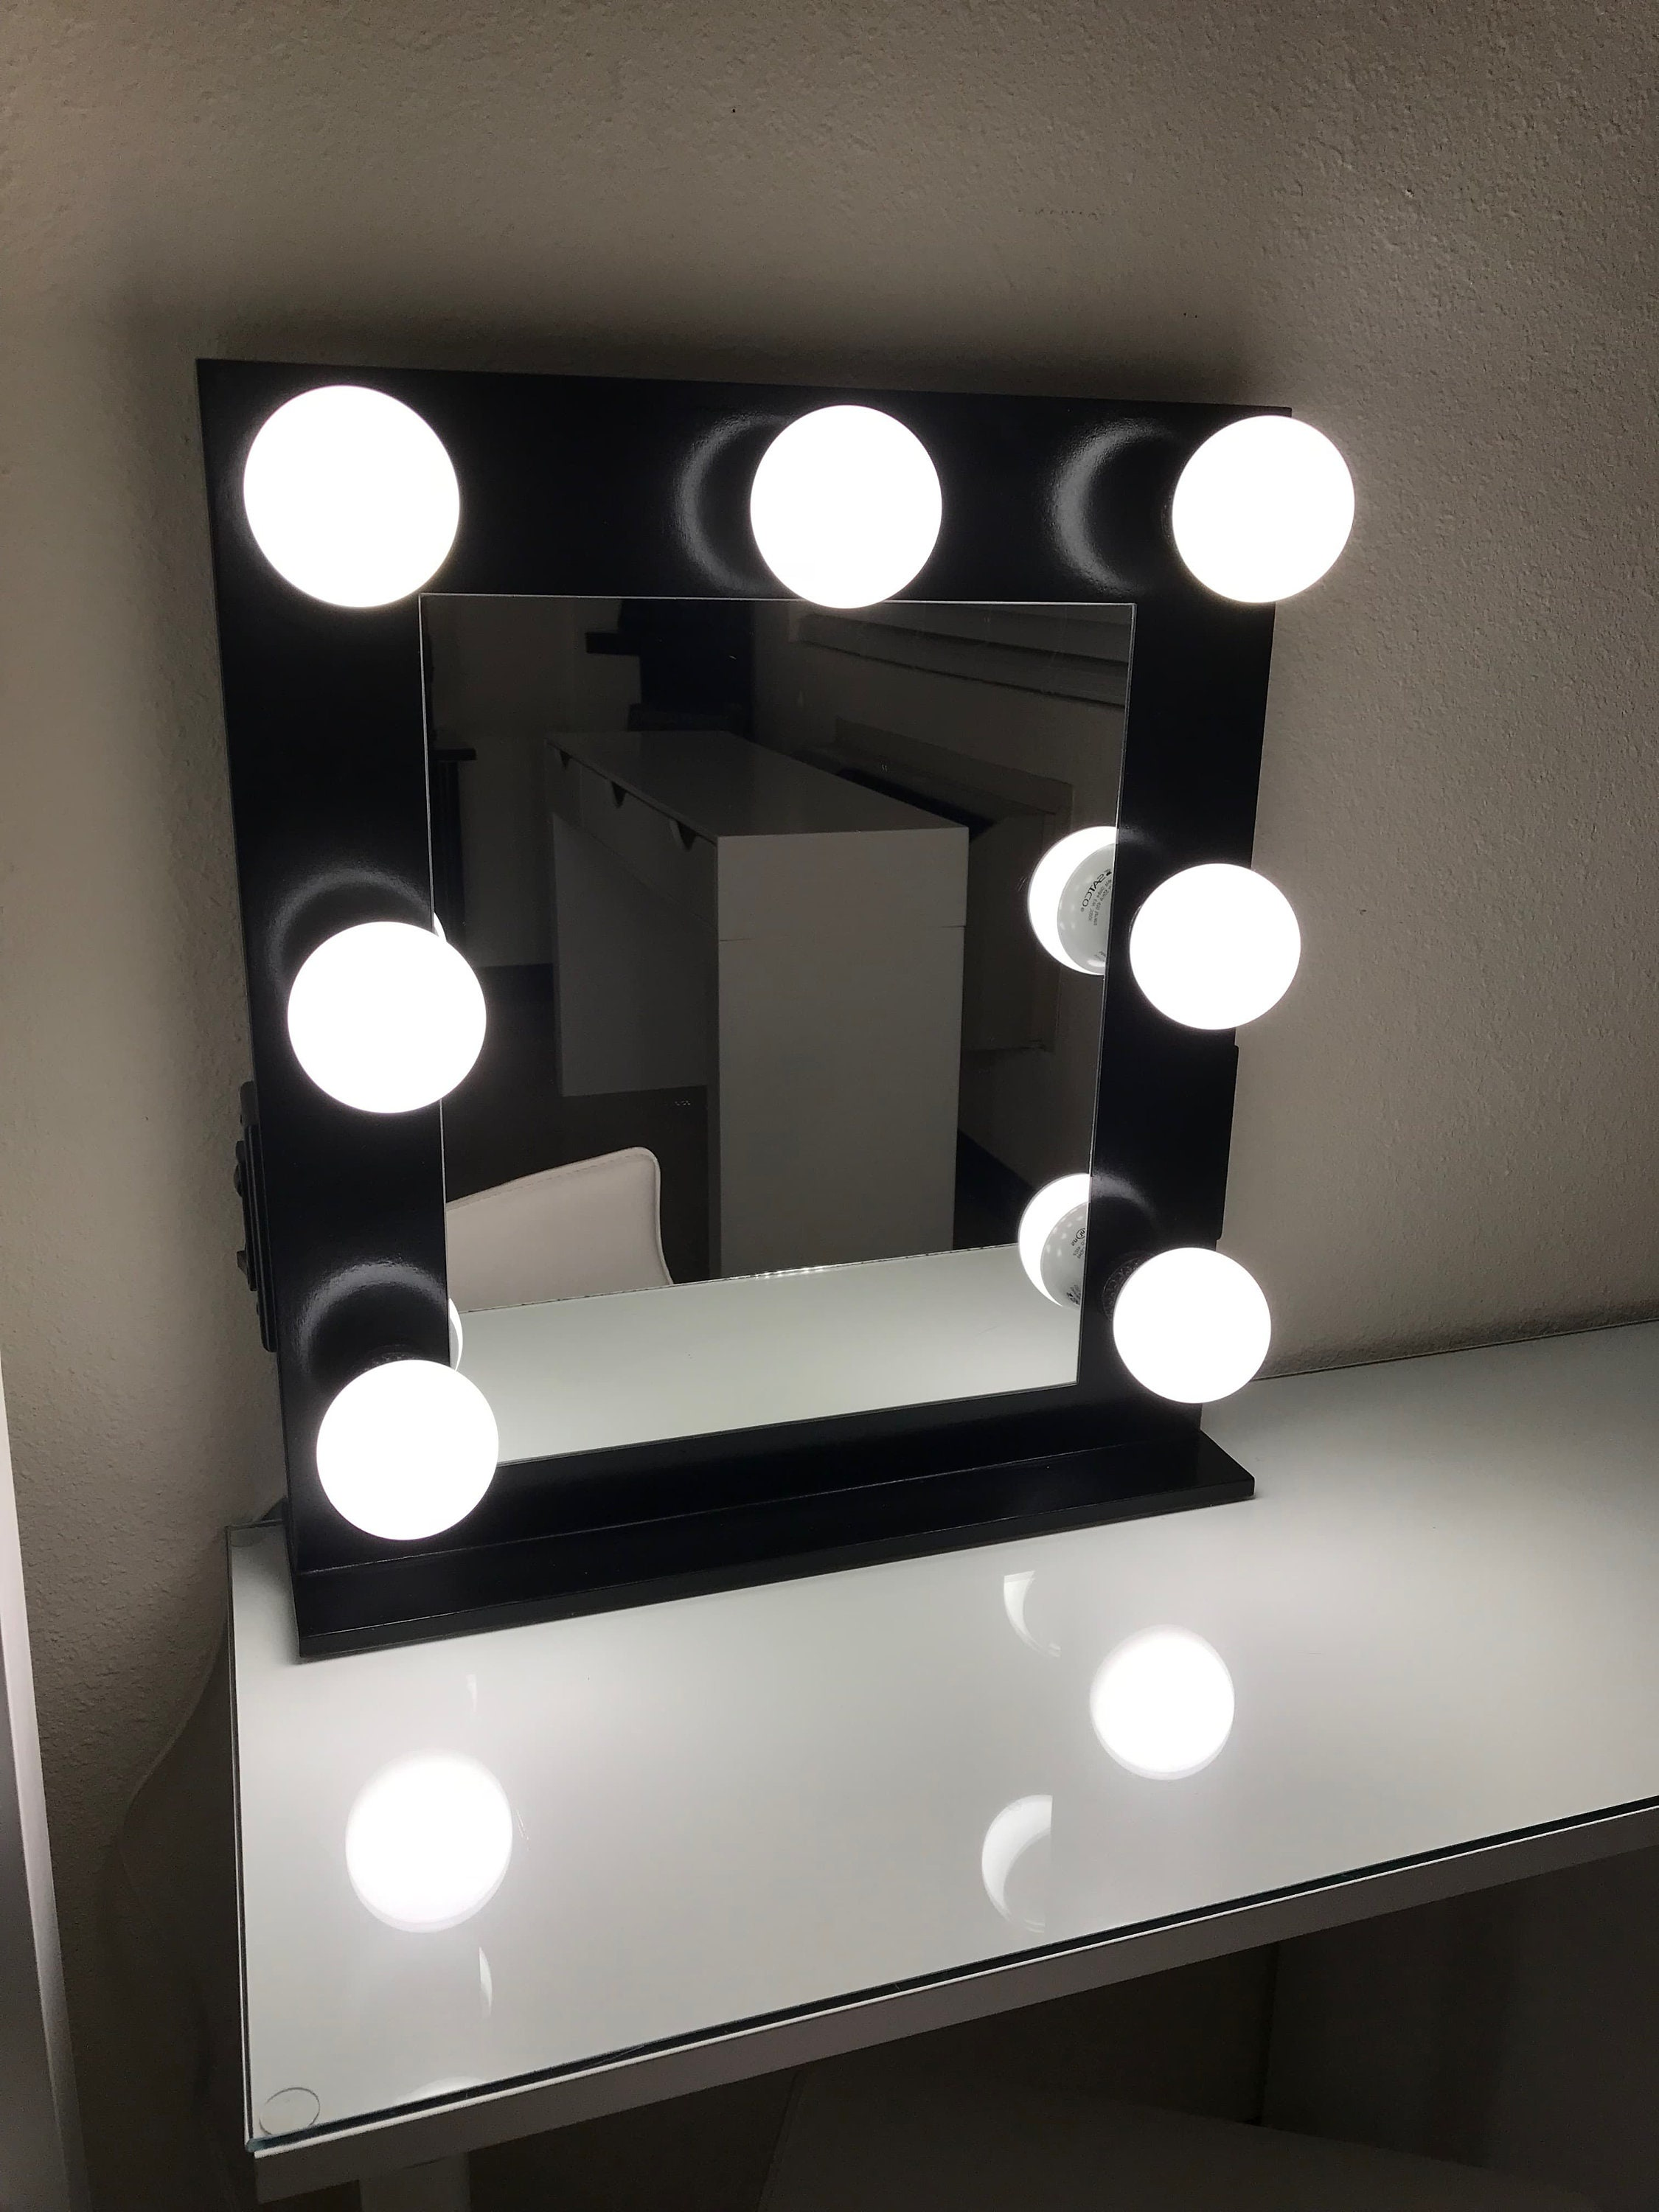 vanity mirror with lights dimmer 2 plug outlet etsy. Black Bedroom Furniture Sets. Home Design Ideas